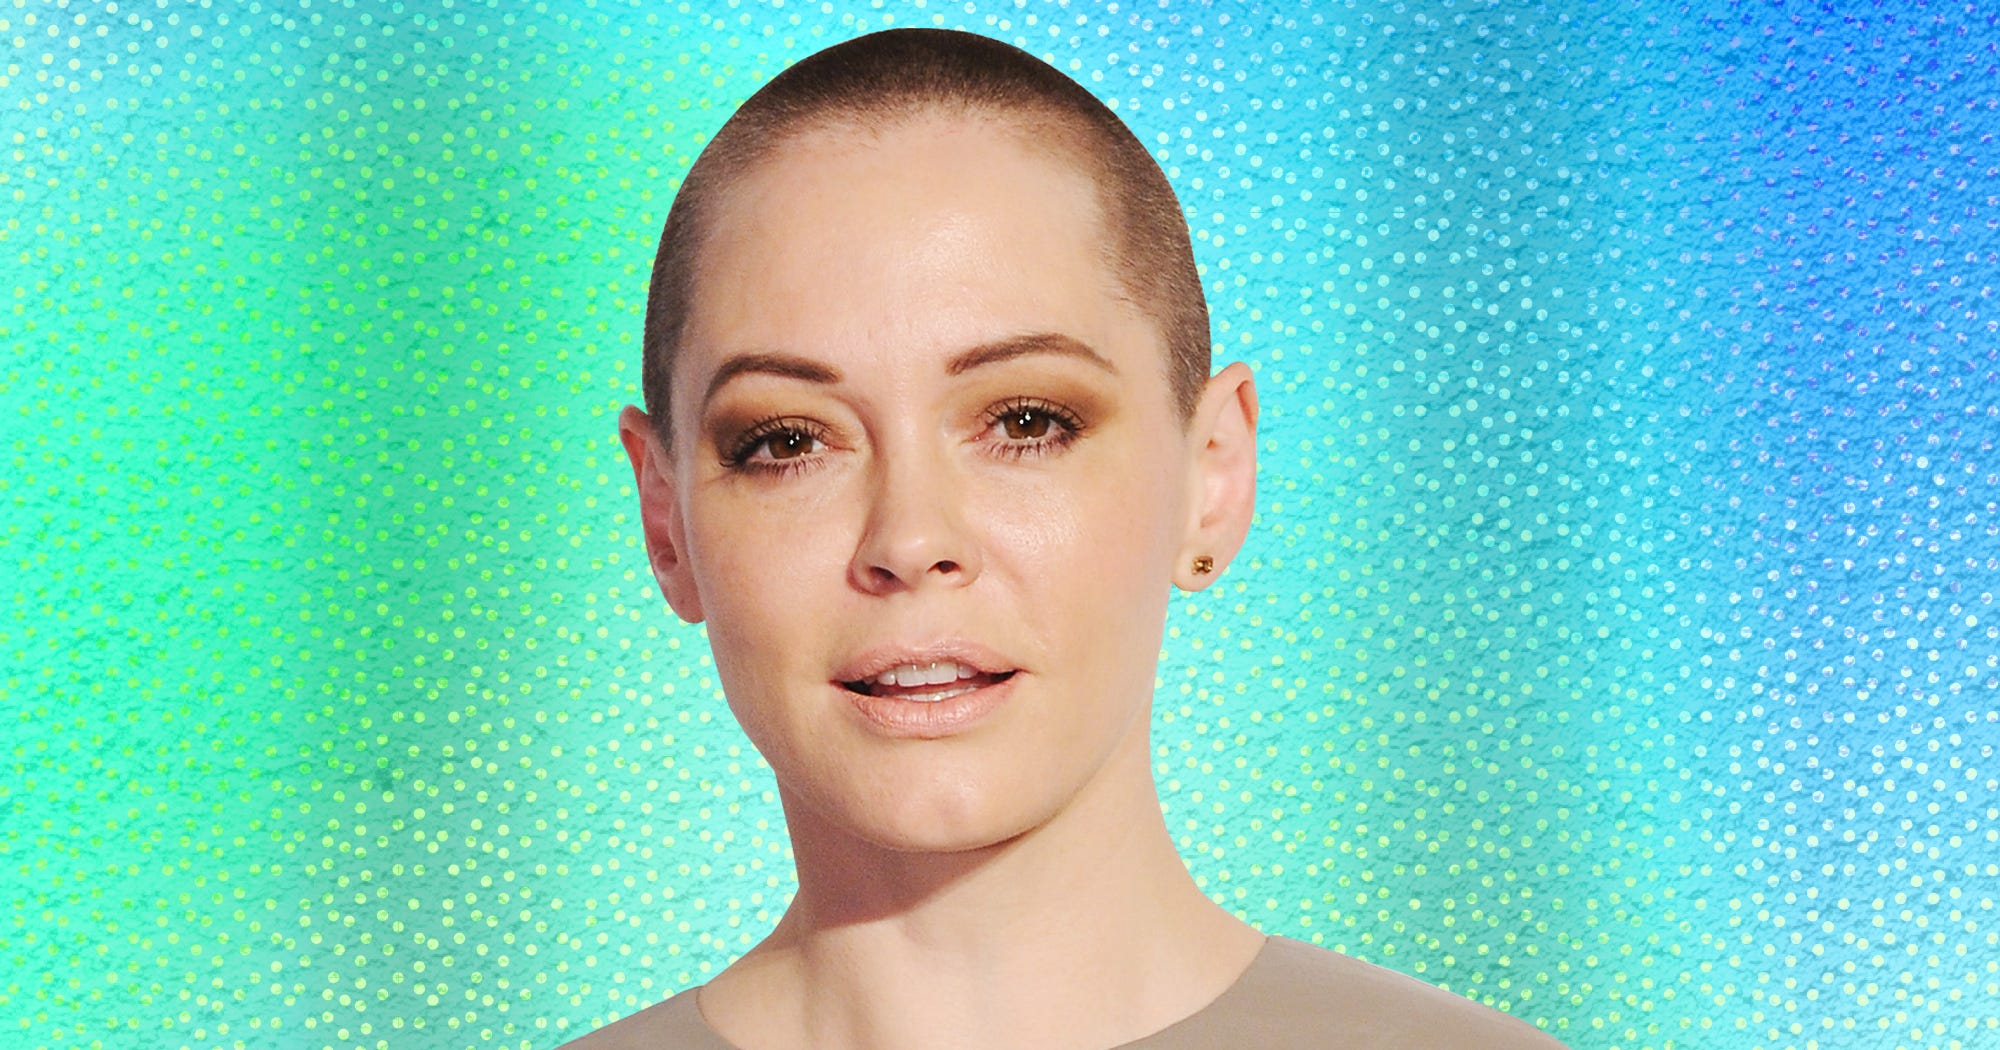 Why Did It Take This Long For Us To Listen To Rose McGowan?